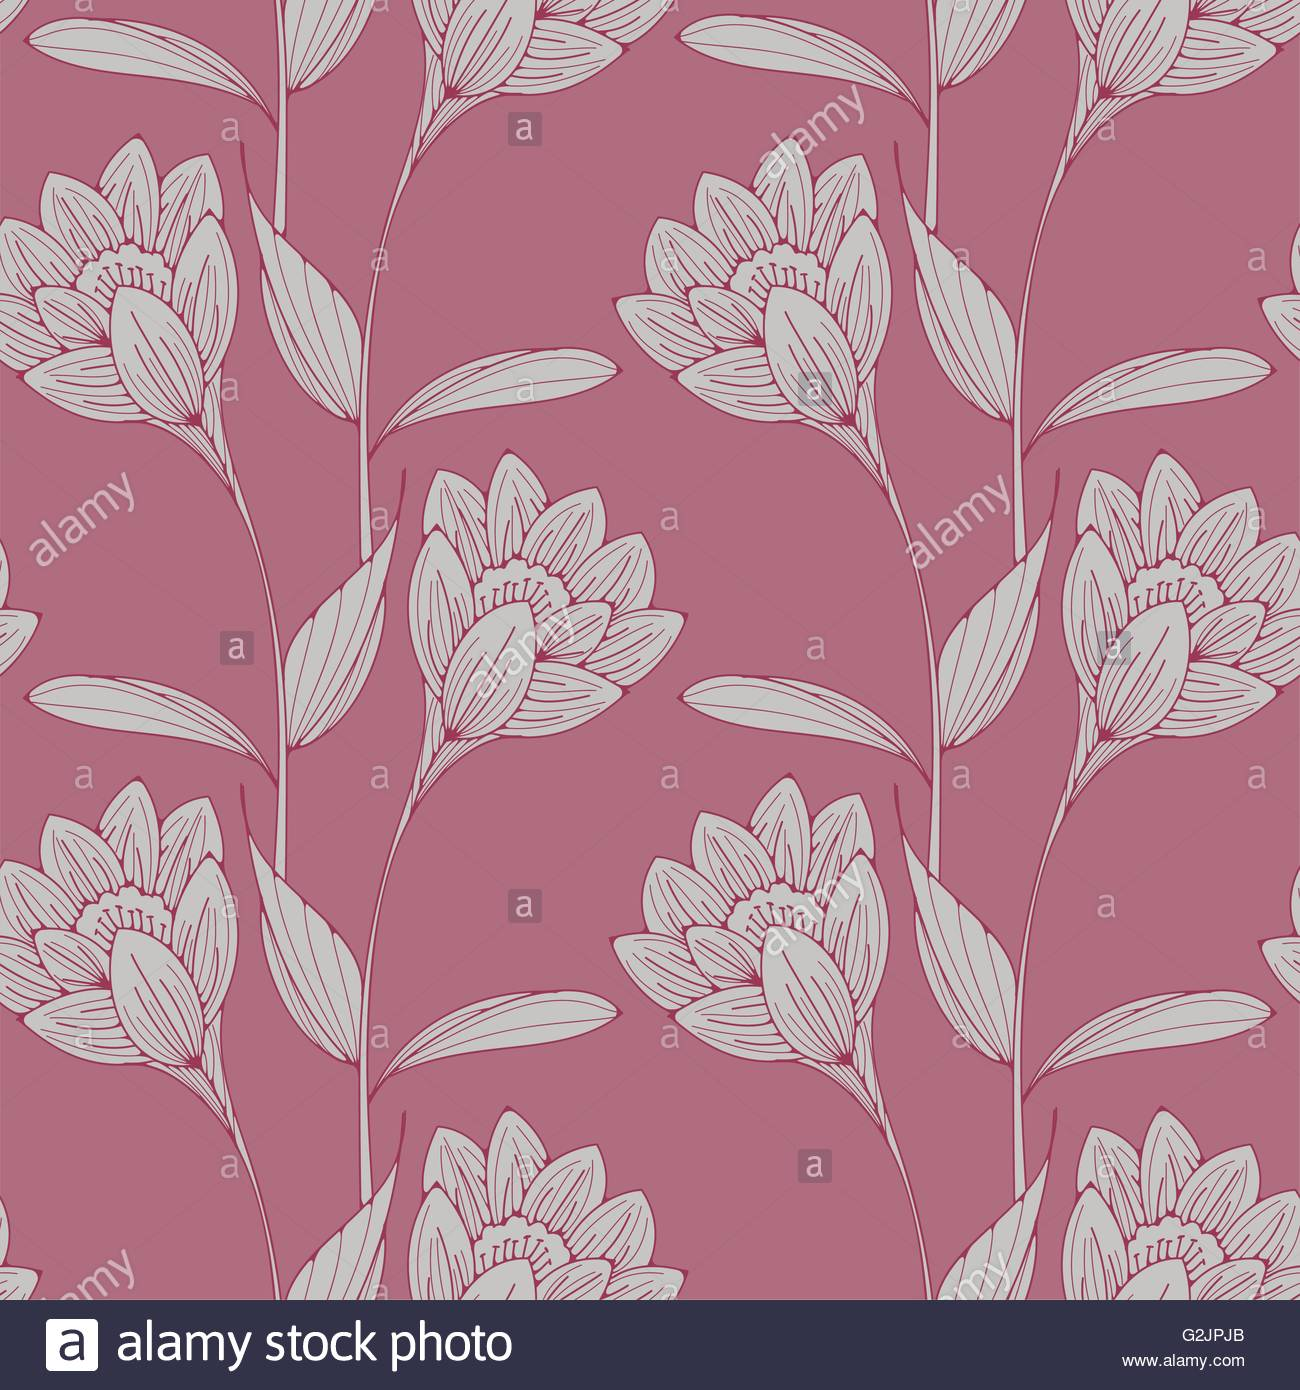 A vintage english style floral wallpaper seamless tiles with stock a vintage english style floral wallpaper seamless tiles with crocus like flowers in old pink shades mightylinksfo